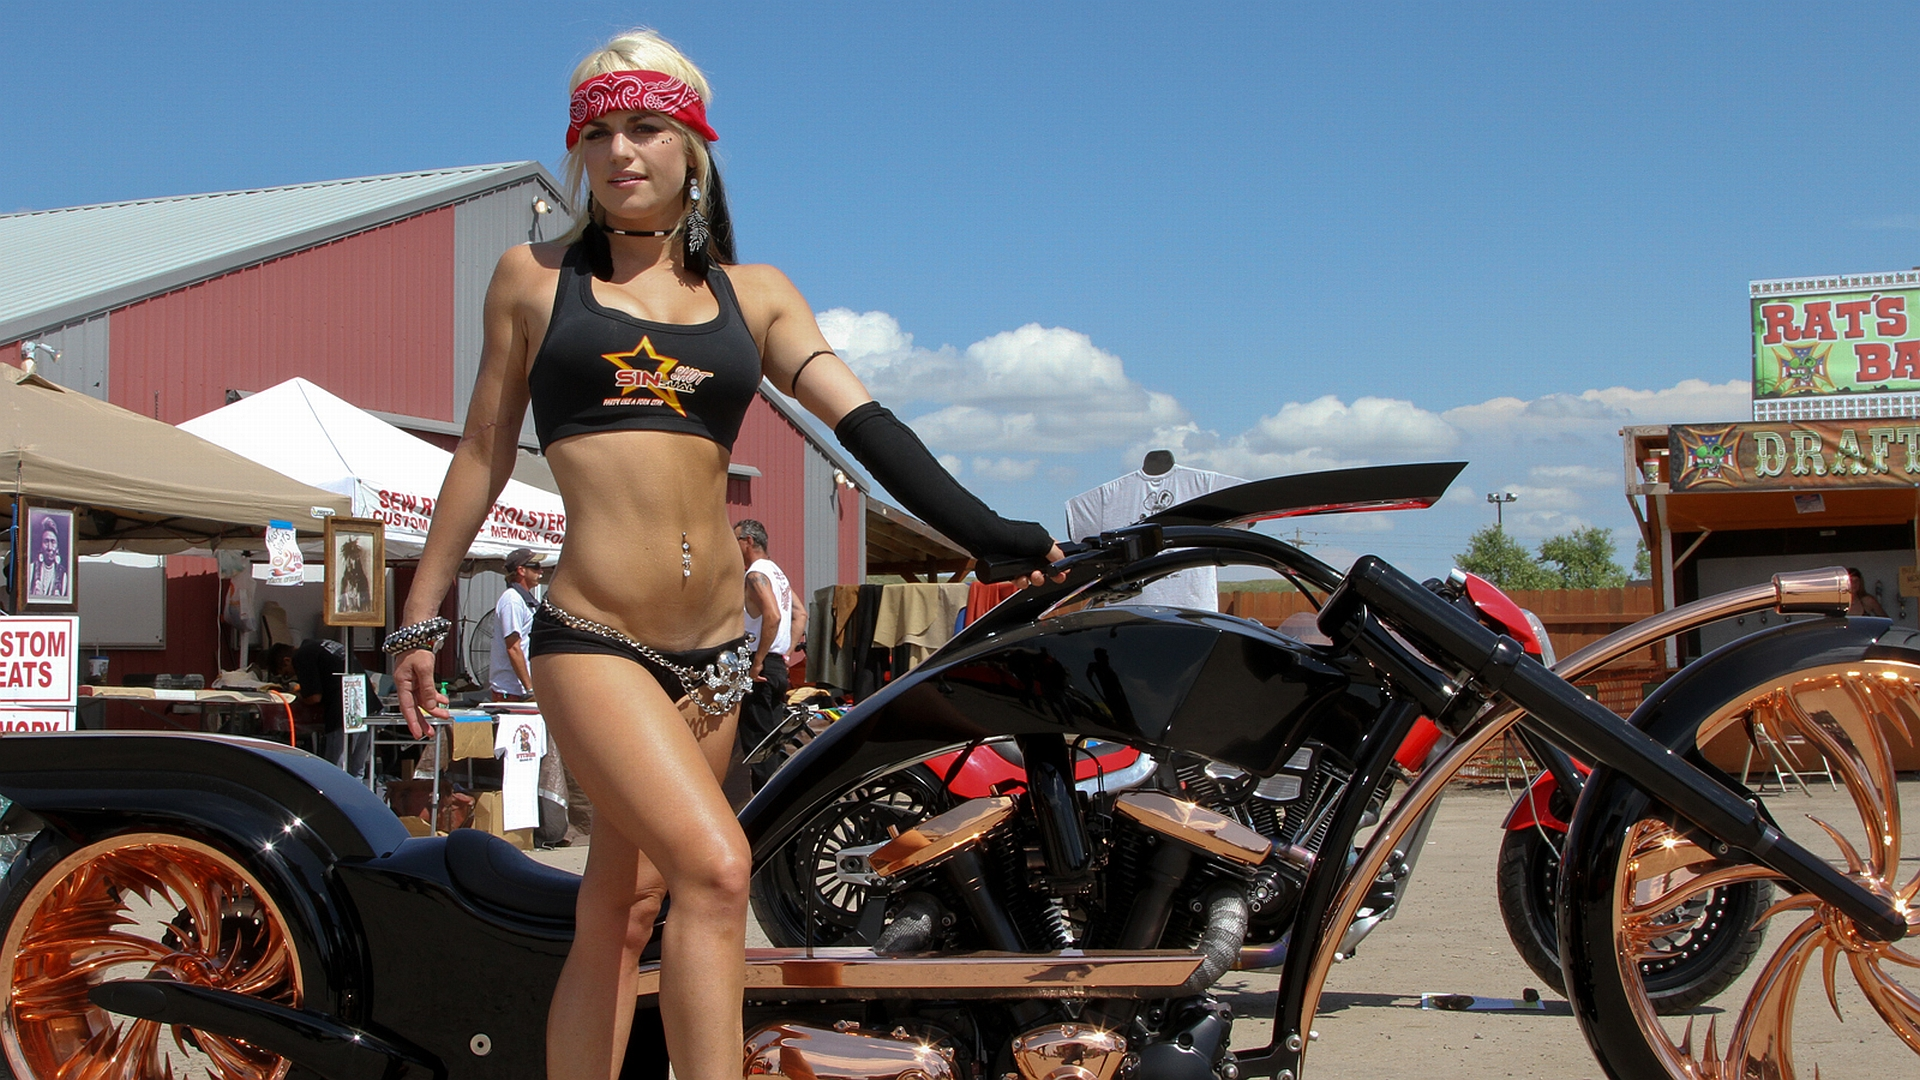 girls motorcycles Rat on rod hot